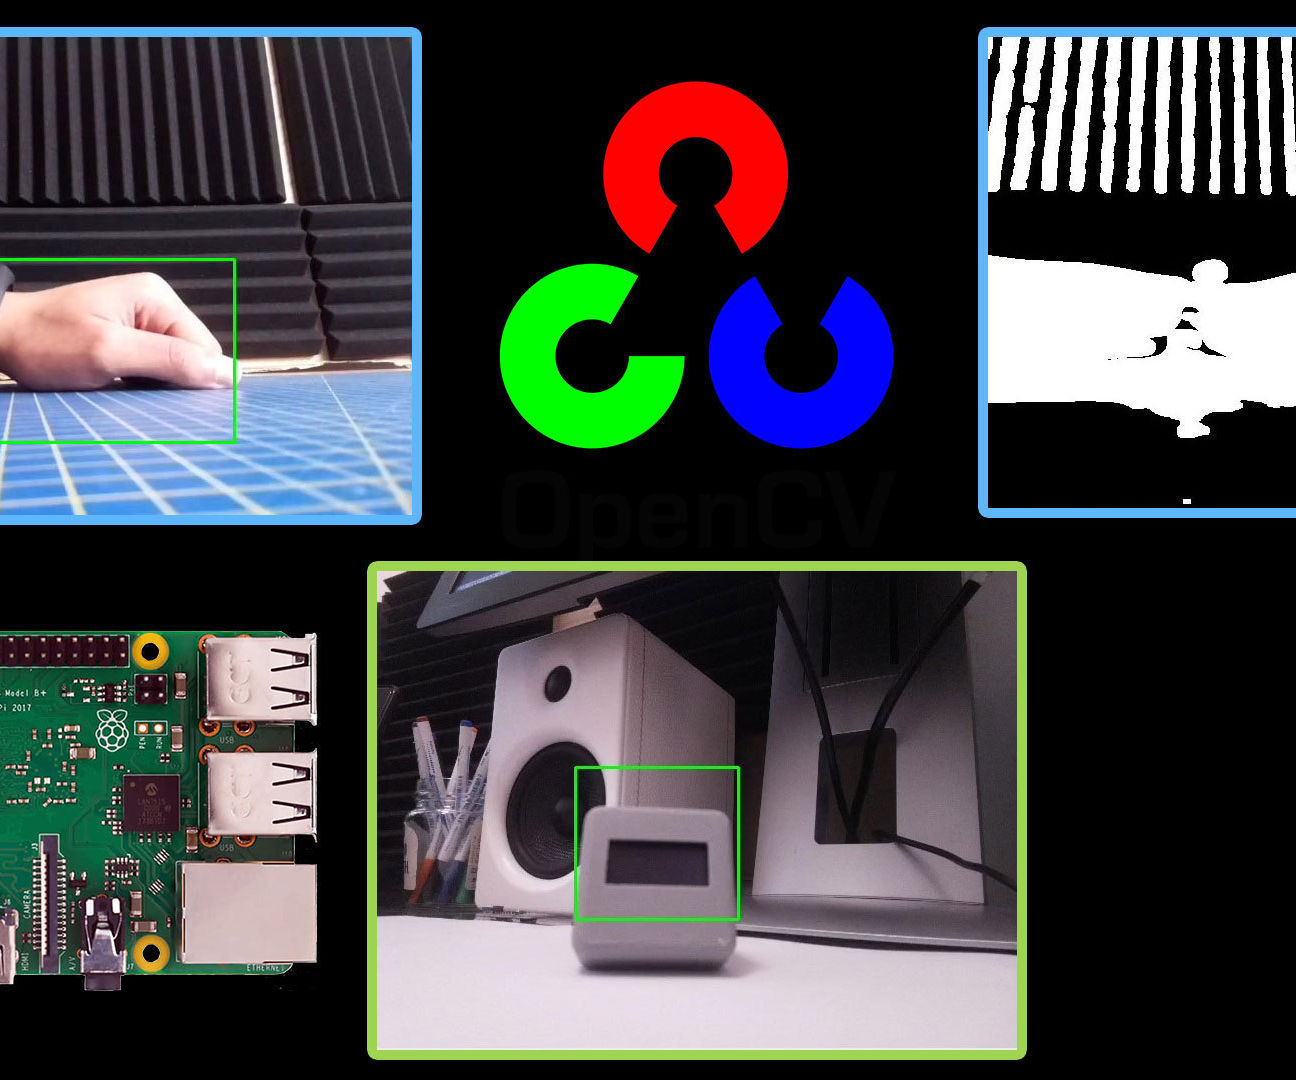 Basic Object & Motion Detection Using a Raspberry Pi